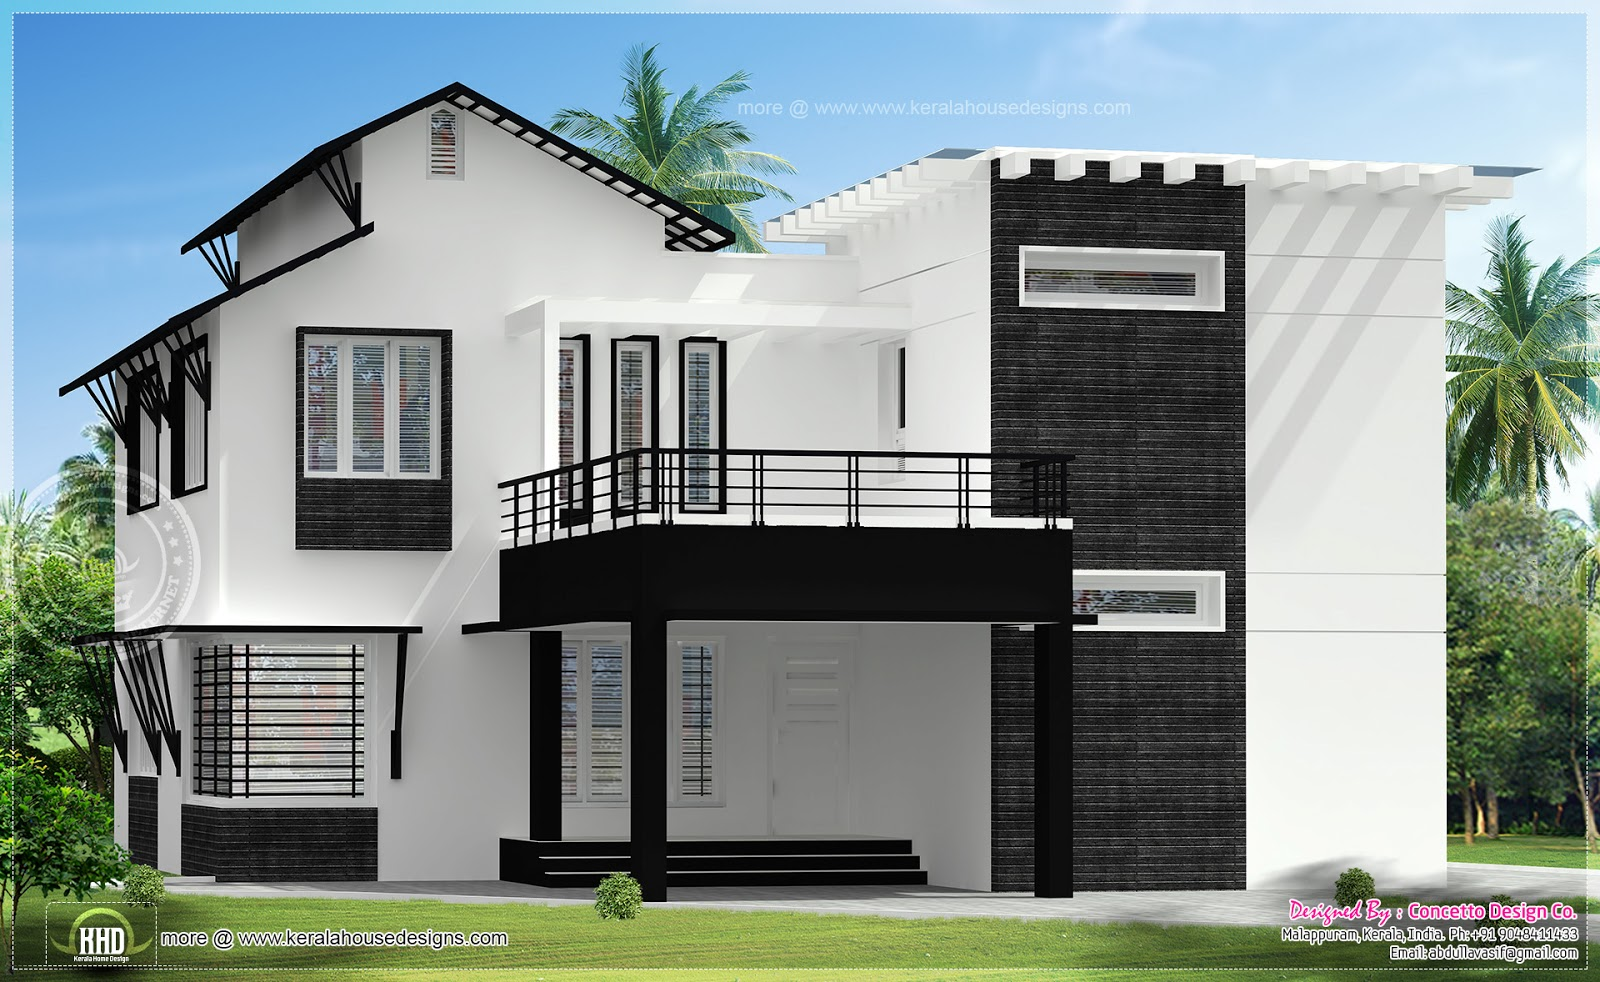 5 different house exteriors by concetto design kerala for Best simple house designs